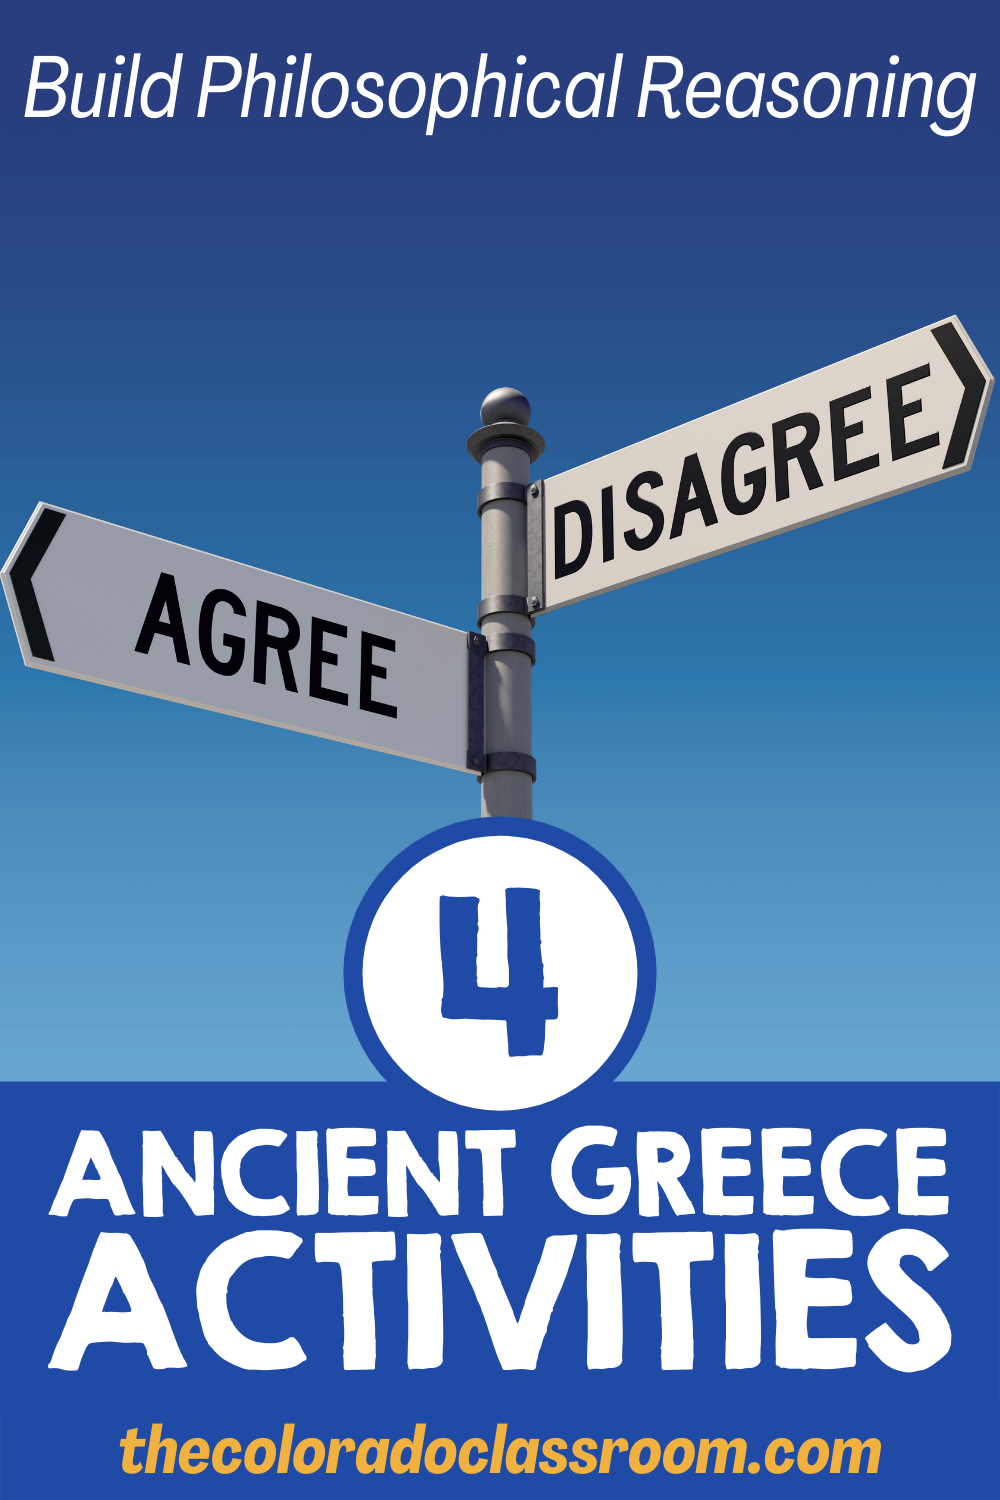 """A sign post with Agree pointing one way and Disagree pointing in the opposite direction. """"Build Philosophical Reasoning"""" at the top of a blue background, with """"4 Ancient Greece Activities"""" towards the bottom. A website, """"thecoloradoclassroom.com"""" is at the very bottom in gold."""